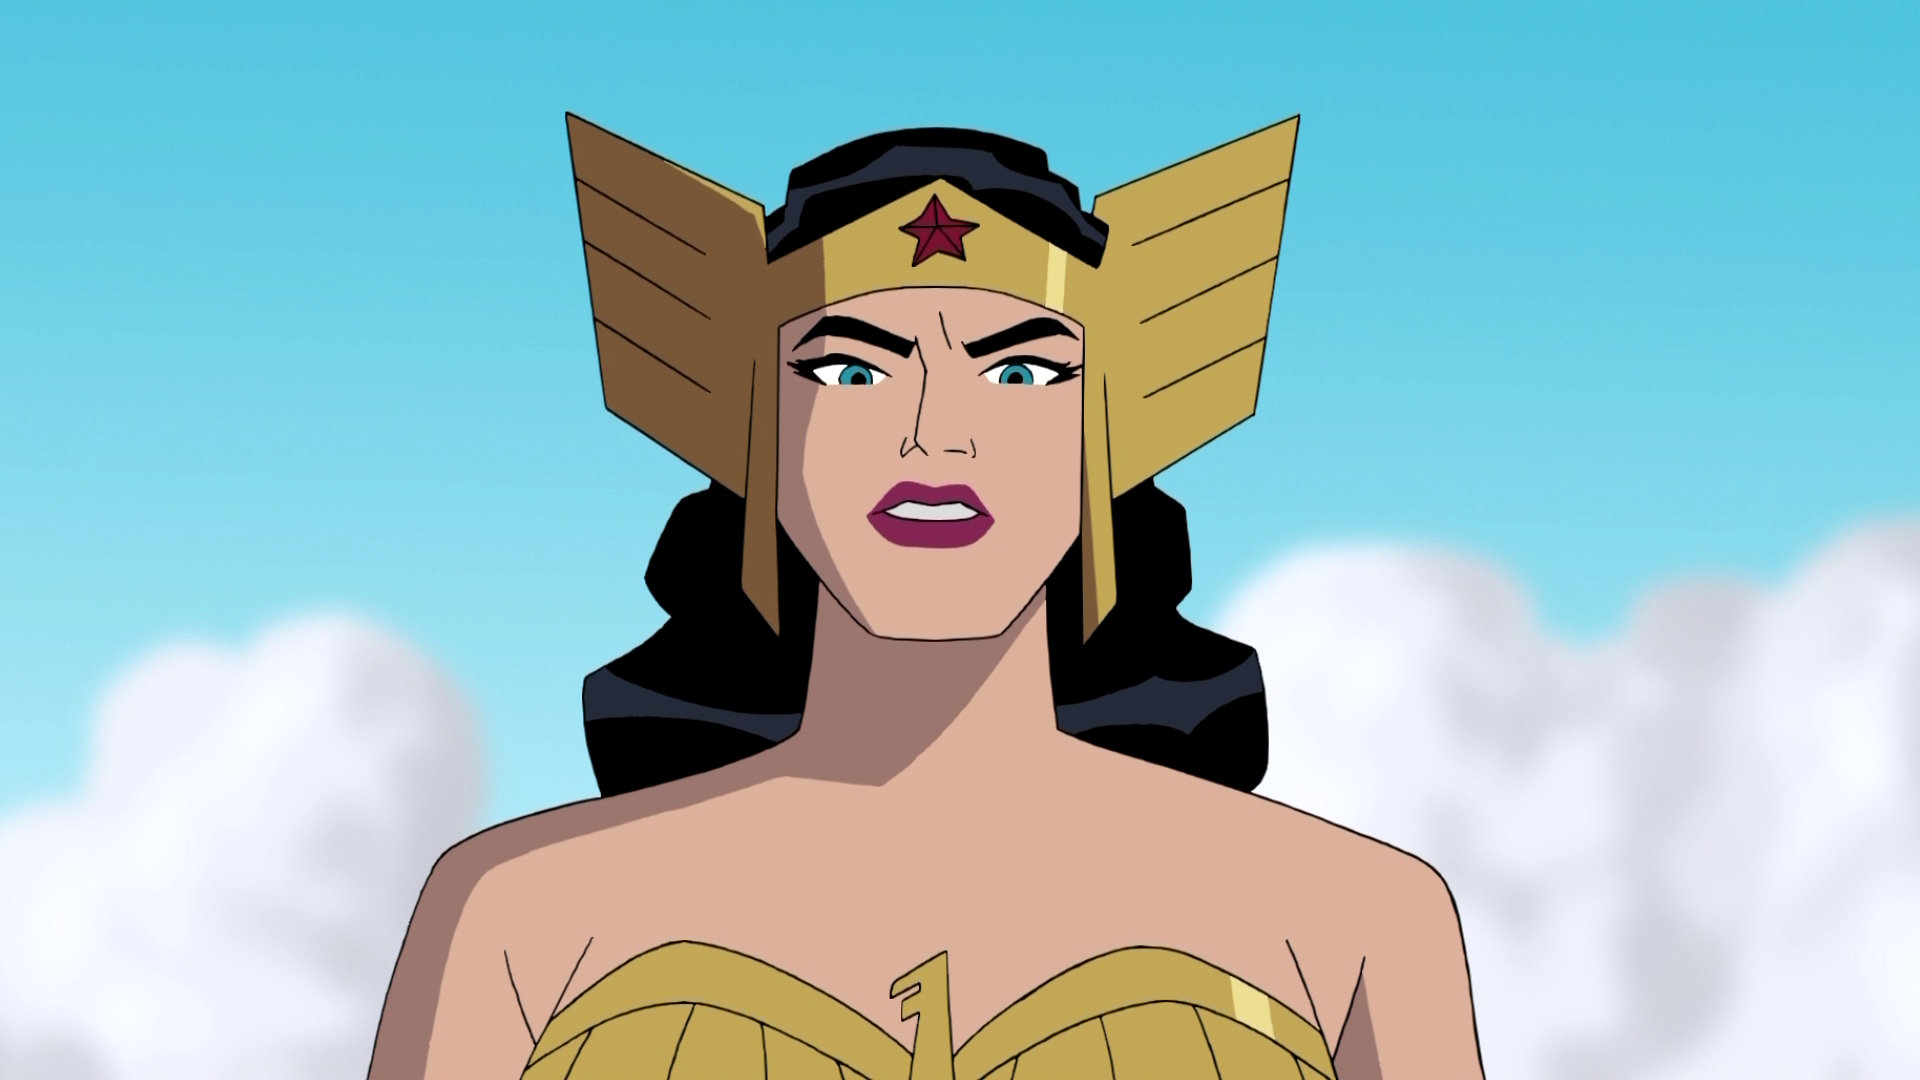 Diana of themyscira justice league the new frontier - Superman wonder woman cartoon ...